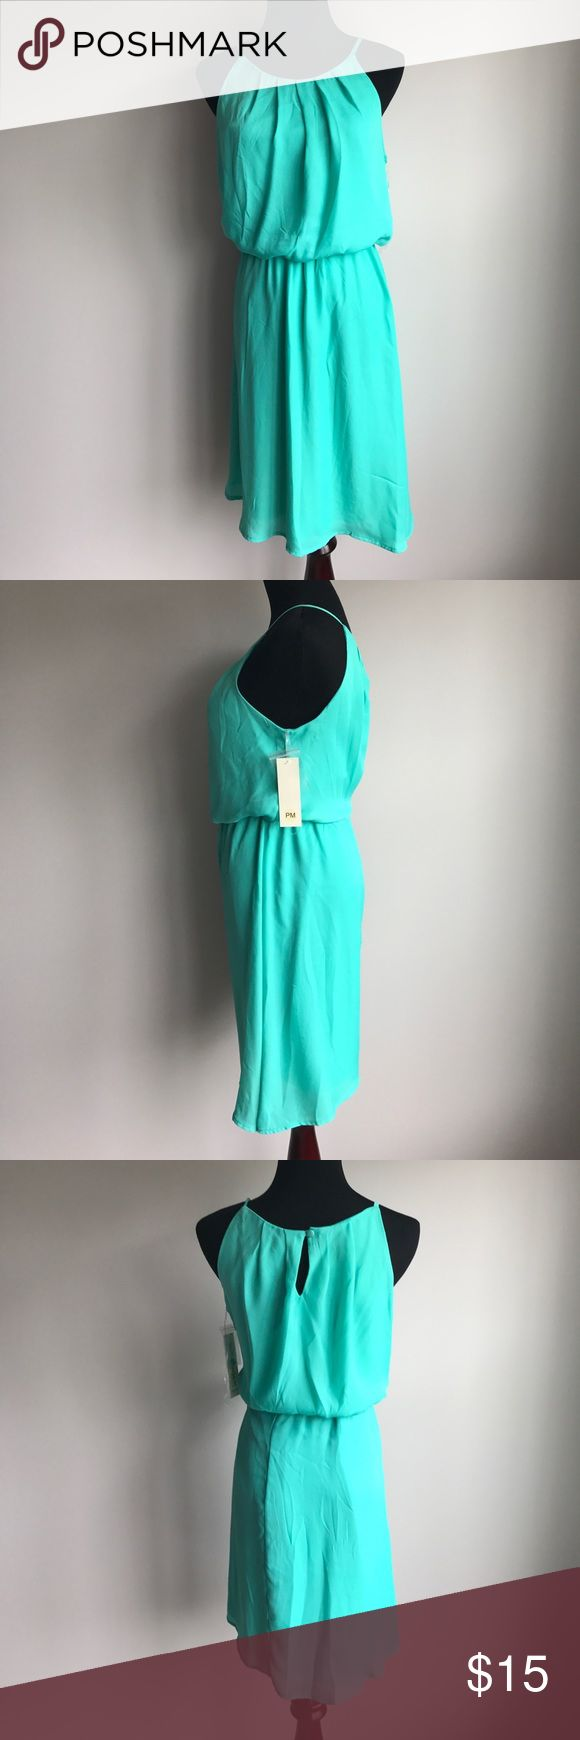 """Tacera Seafoam Green Dress Tacera Seafoam Green Dress                                                              - NWT                                                                                            - Petite Medium - I'm 5'7"""" and the petite hit me about an inch or two above the knee, the regular was way too long.                                                                                                        - Fully lined Tacera Dresses Midi"""